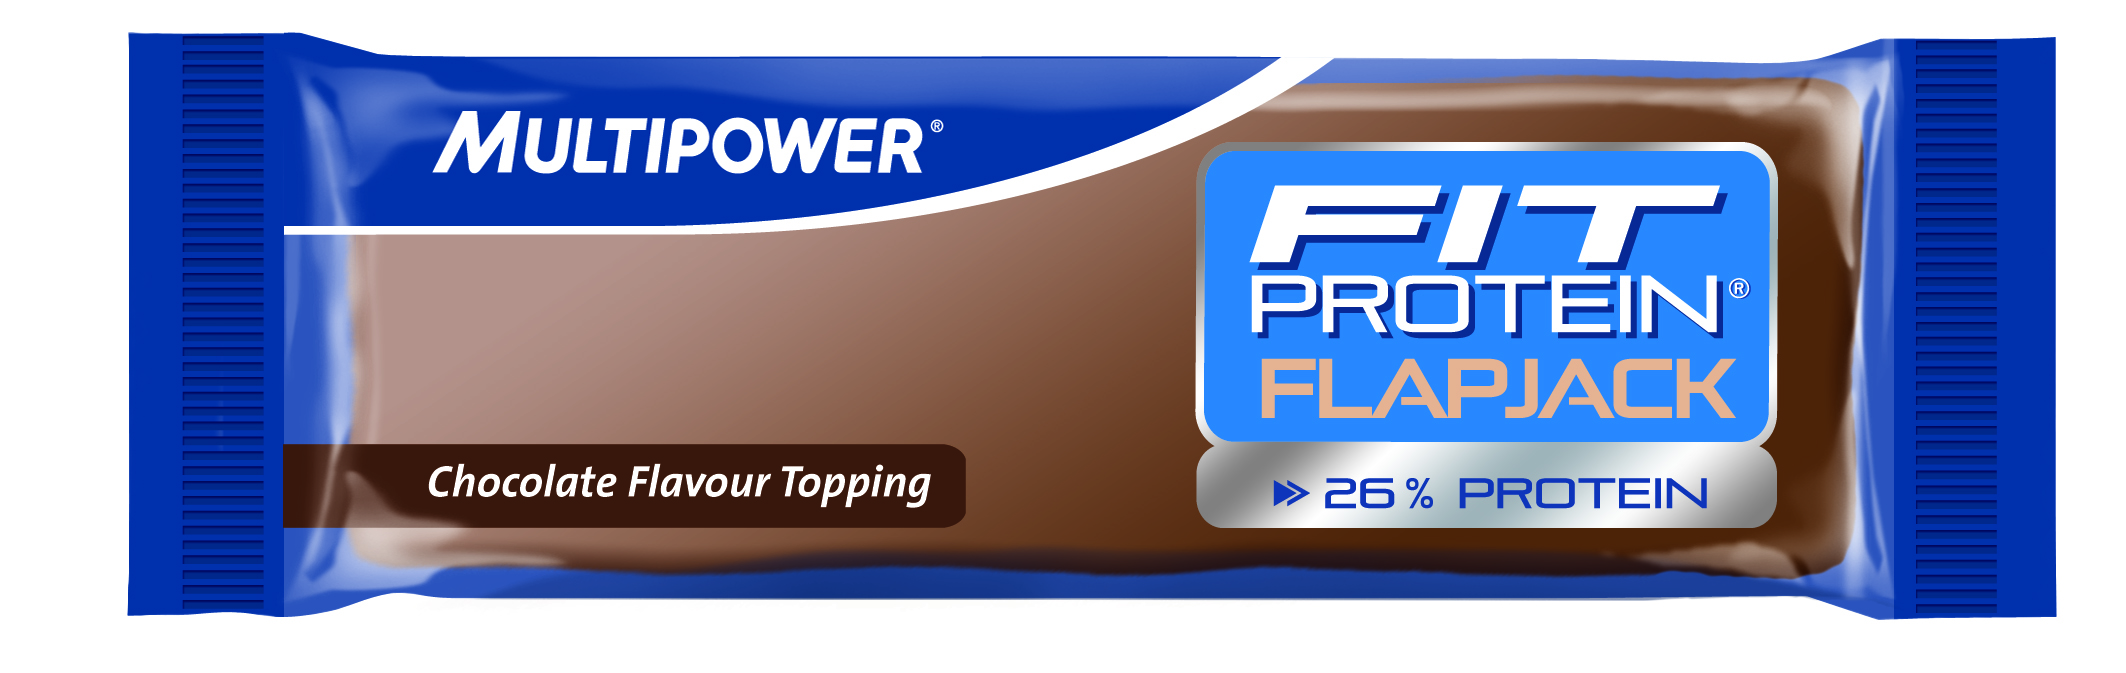 Multipower Fit Protein Flapjack